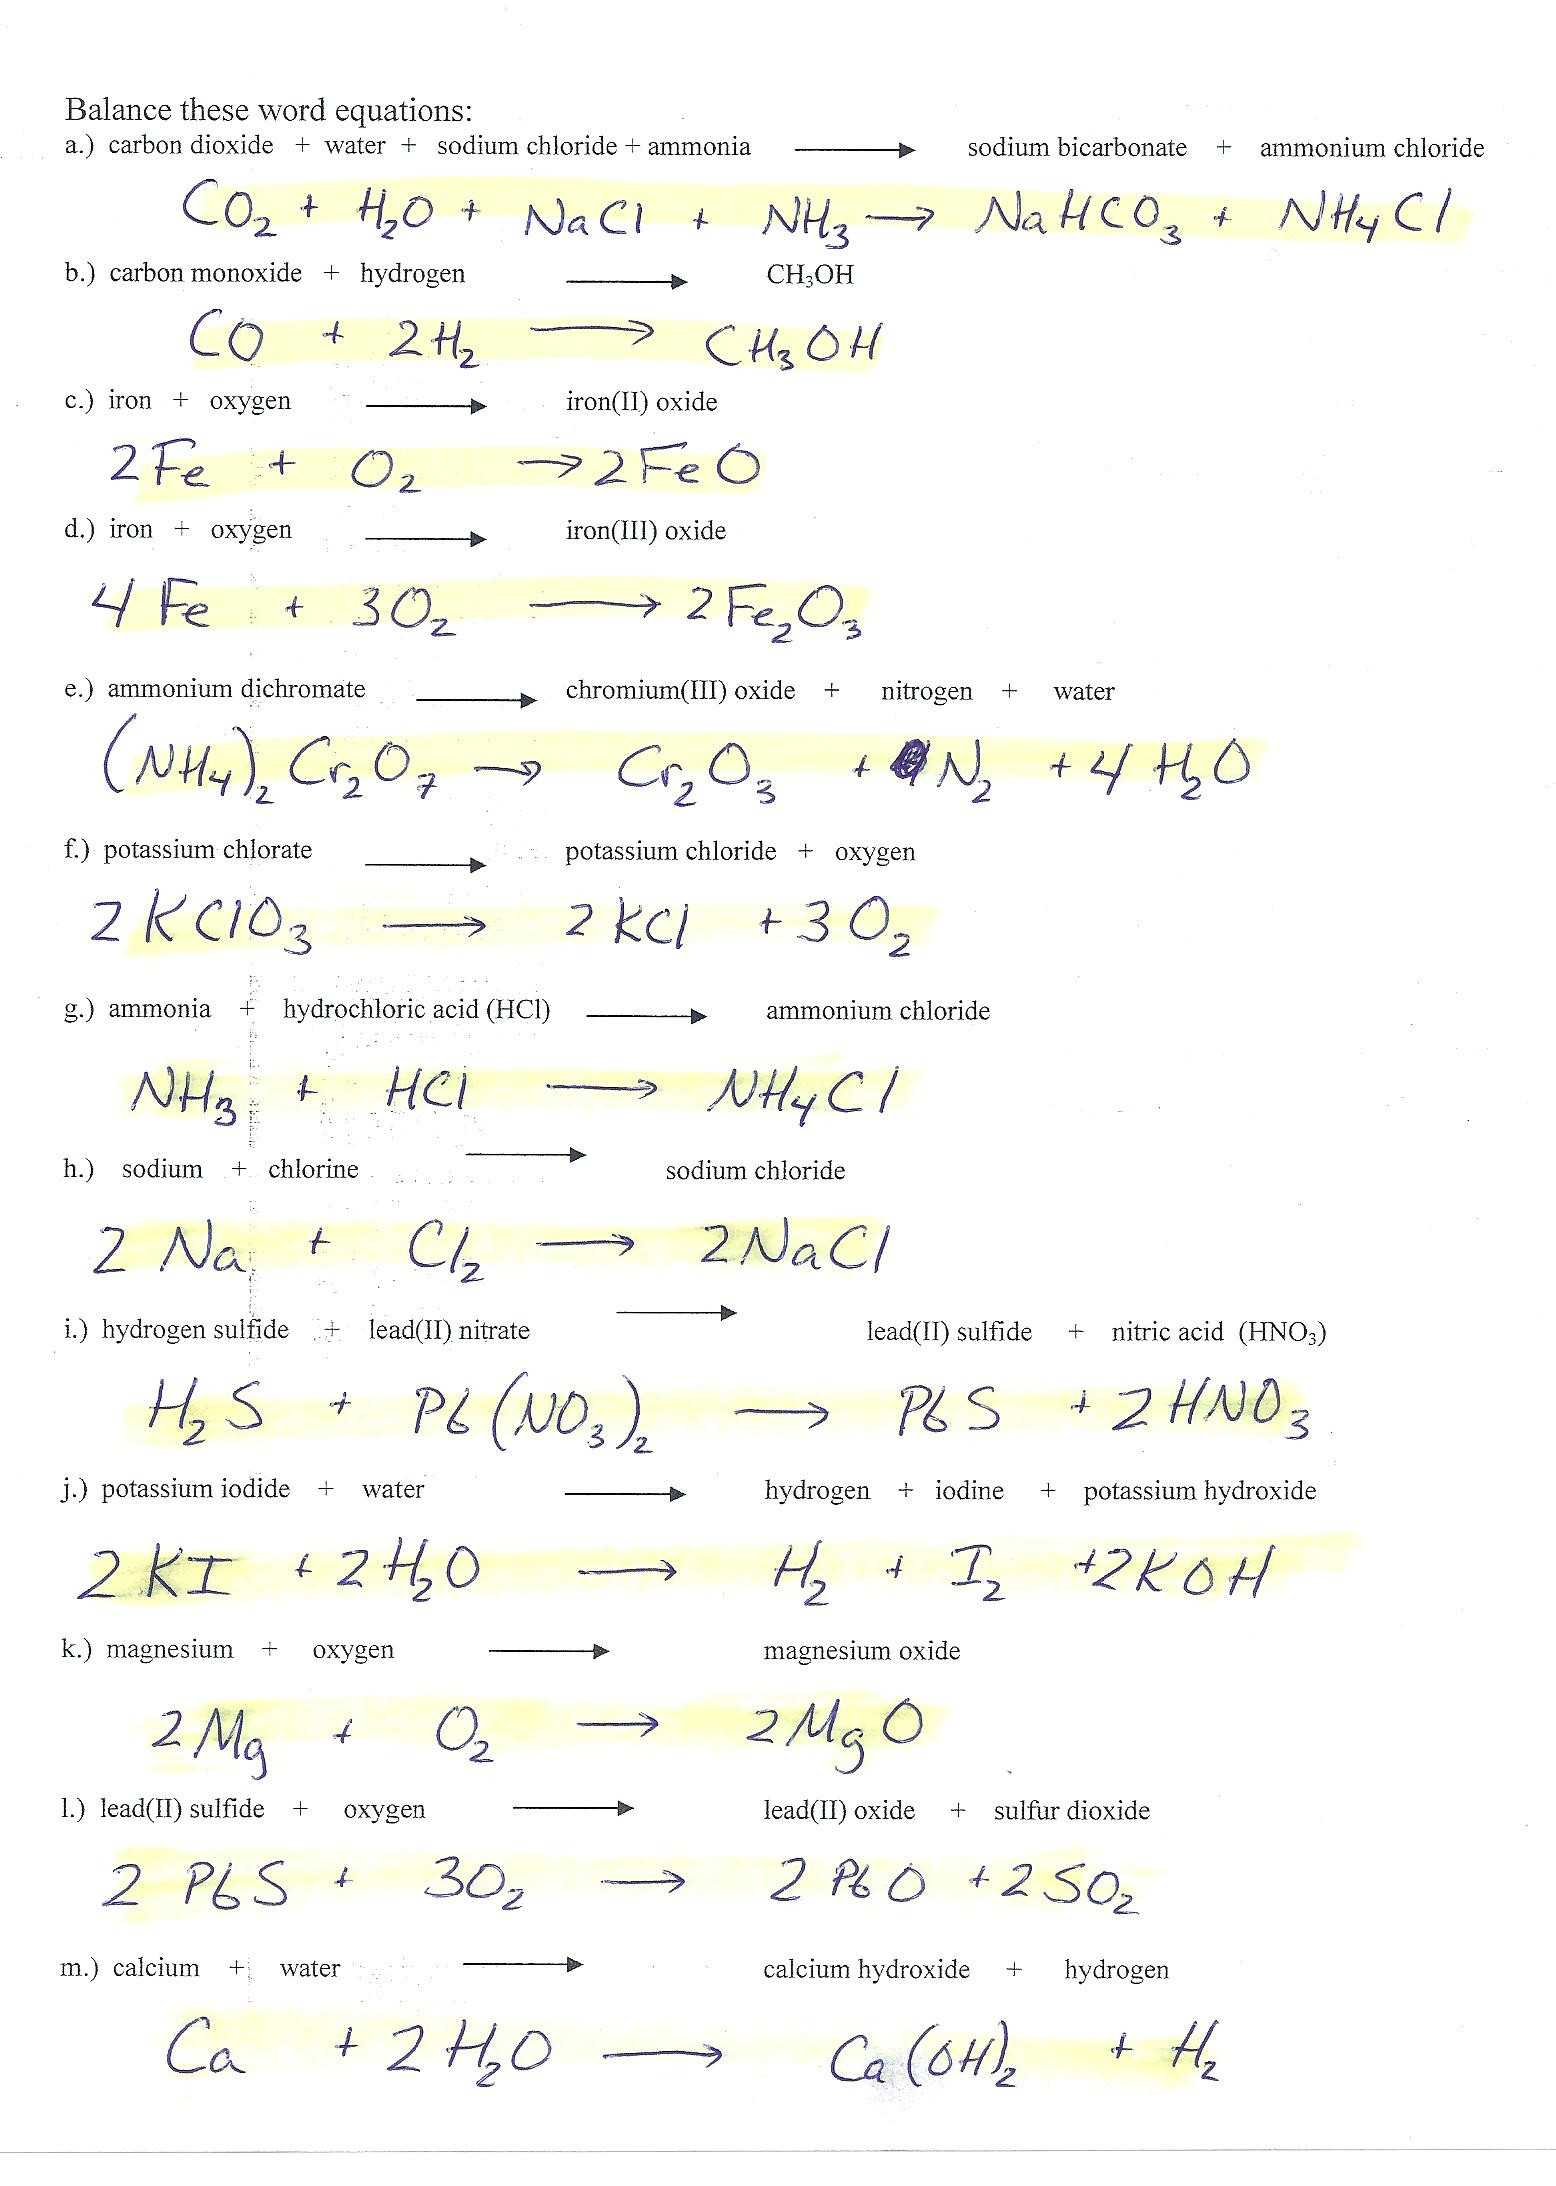 Limiting Reagent Worksheet 2 as Well as Limiting Reagent Worksheet Answers New Balancing Chemical Equations